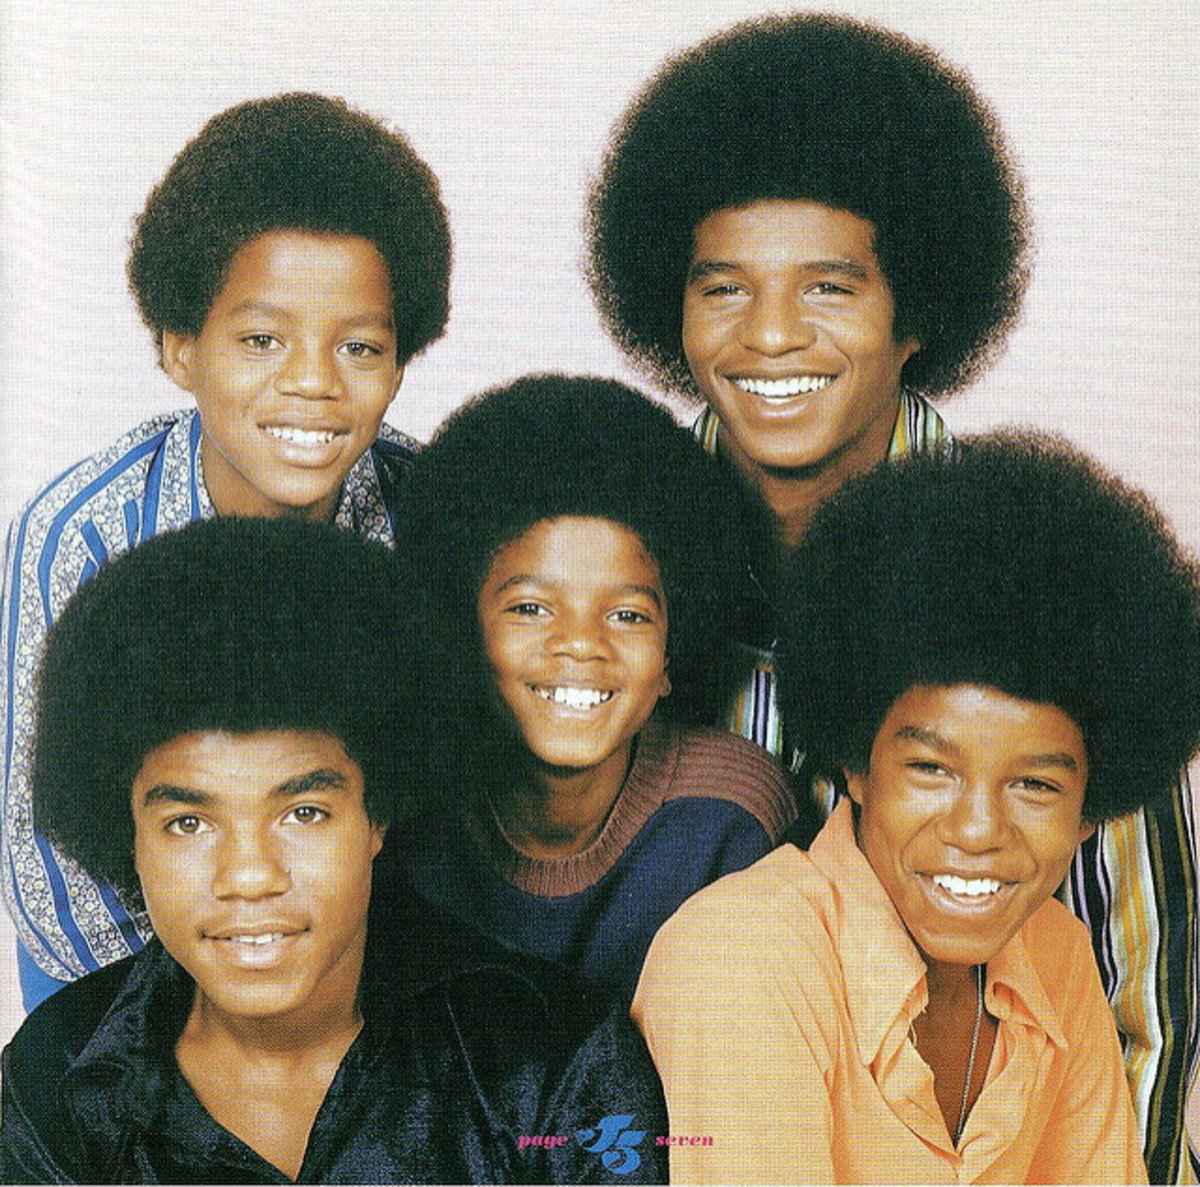 Young Michael Jackson  (in the center)